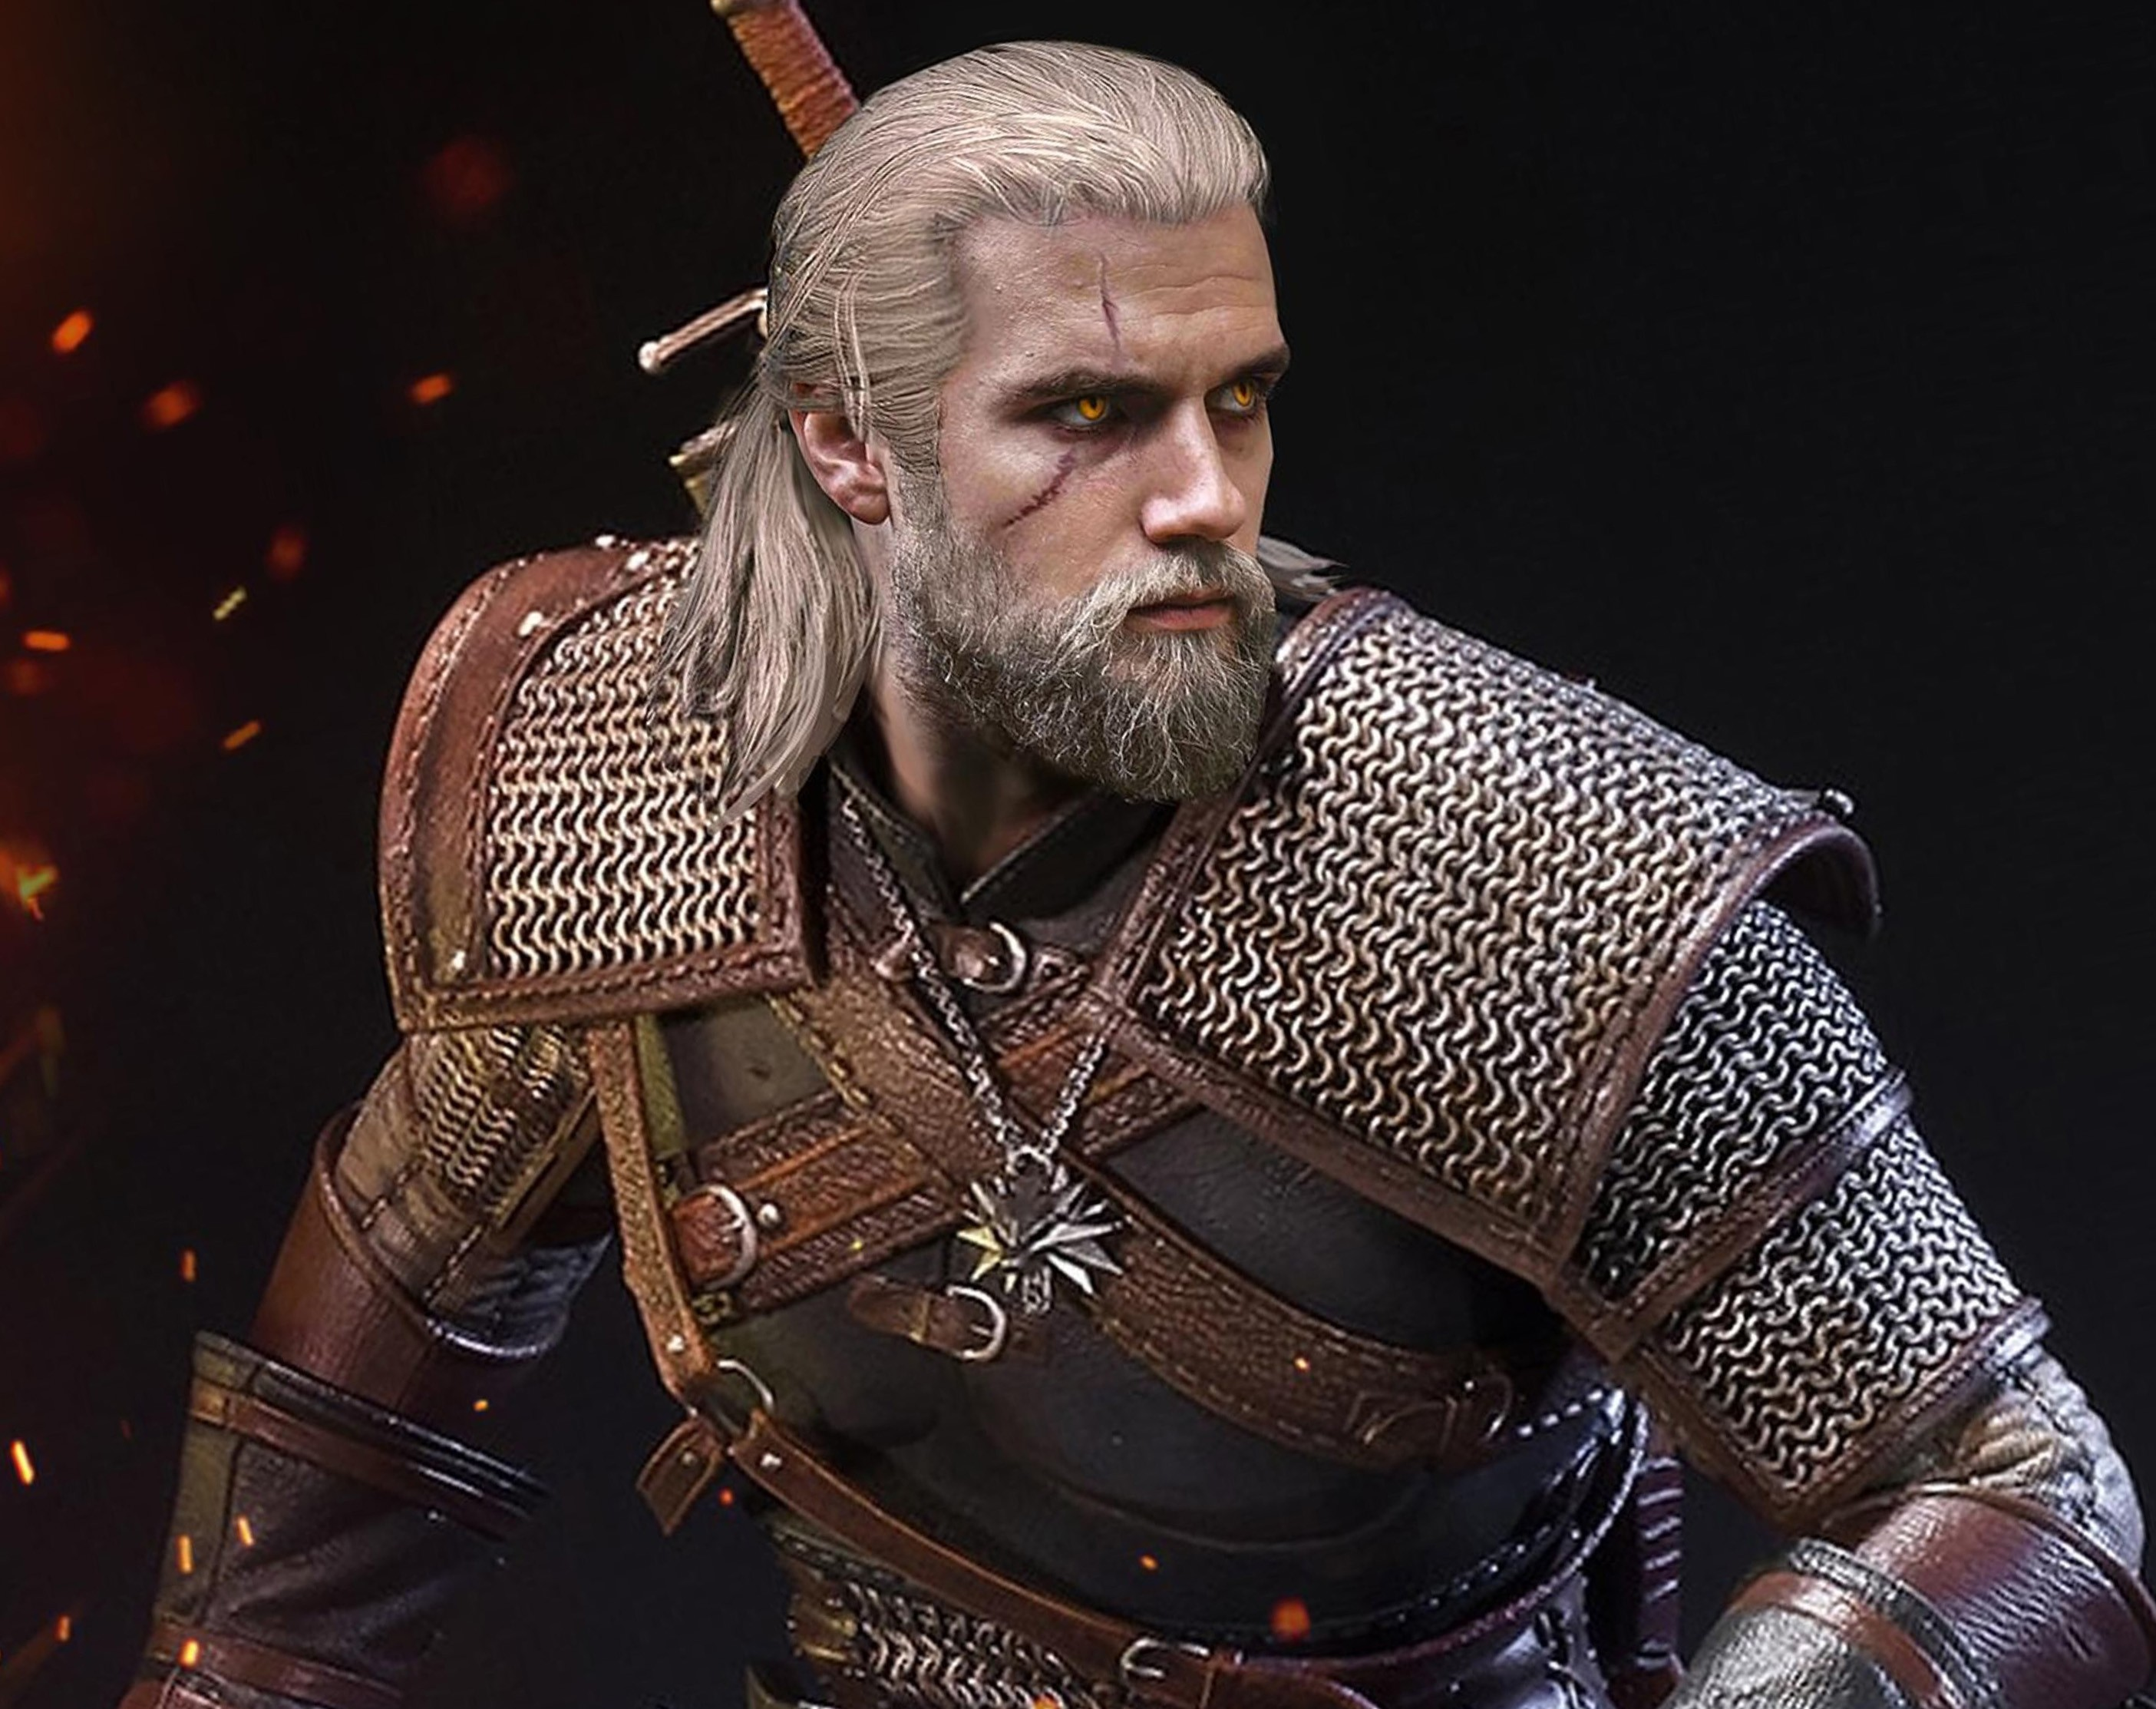 A full beard of Geralt.